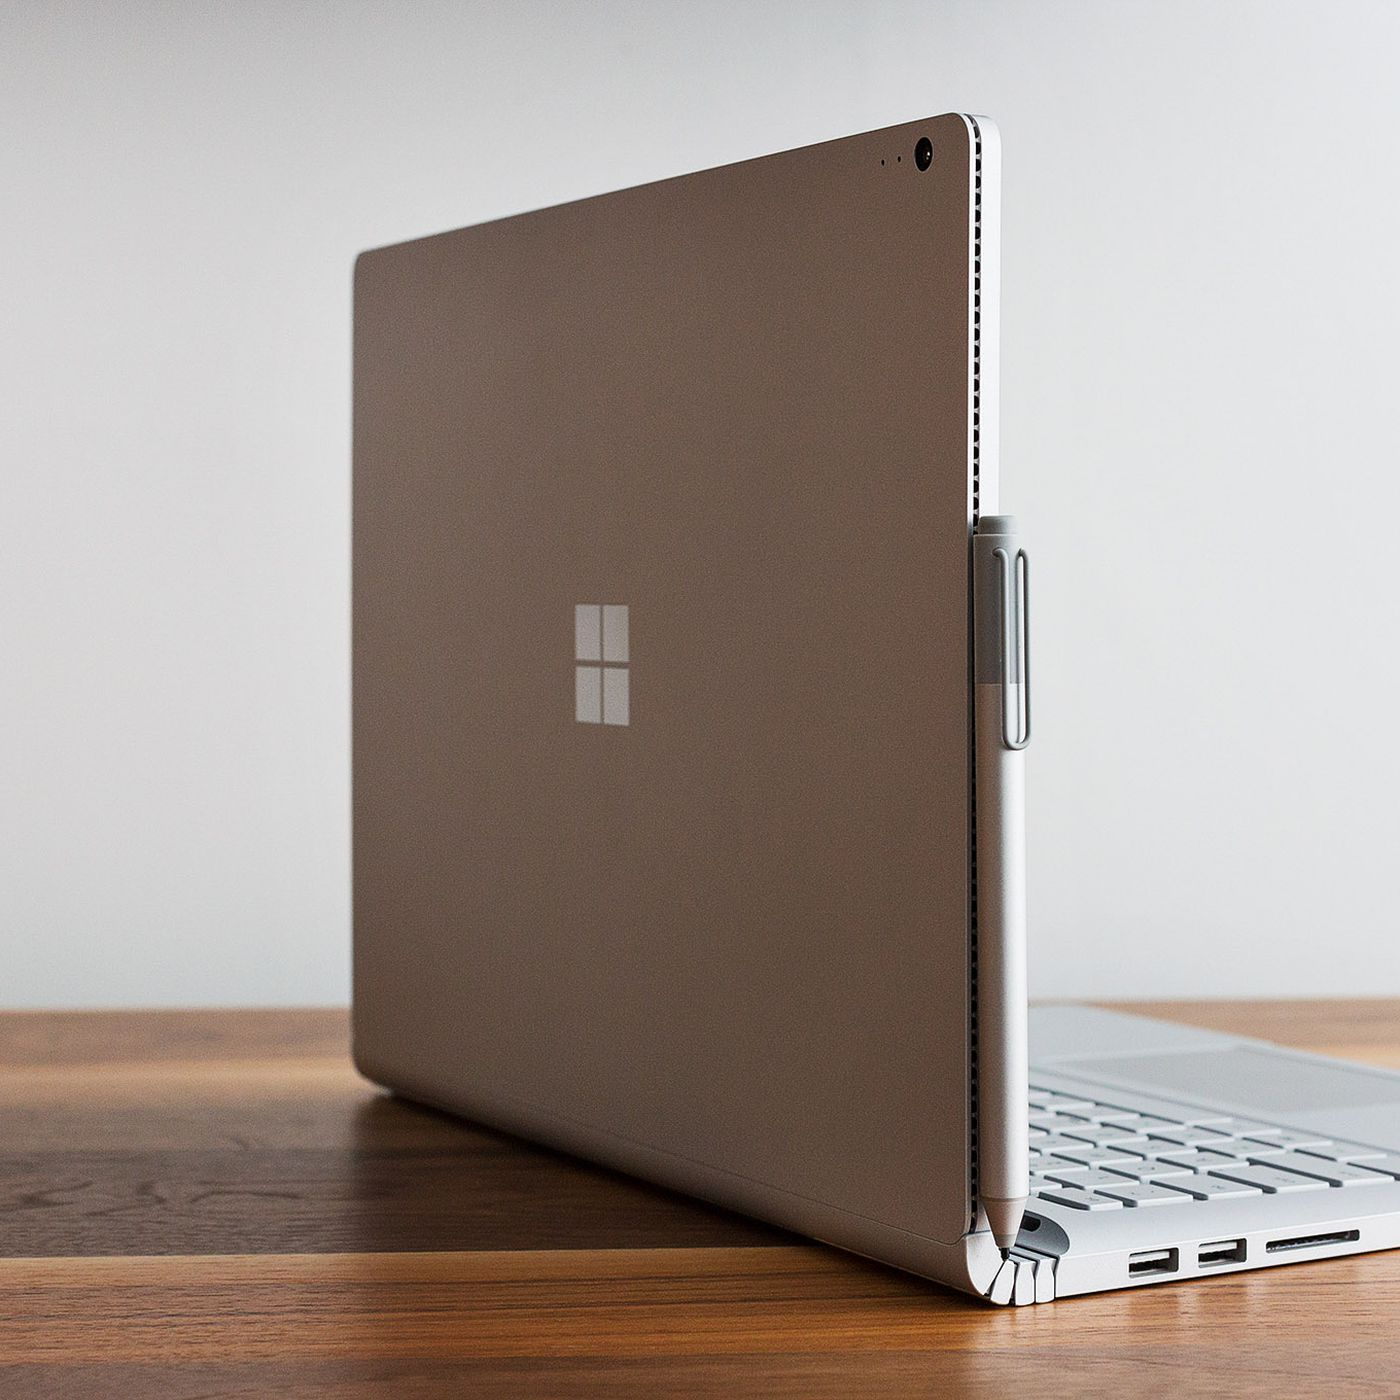 Microsoft's new tool helps you easily migrate your stuff from Mac to